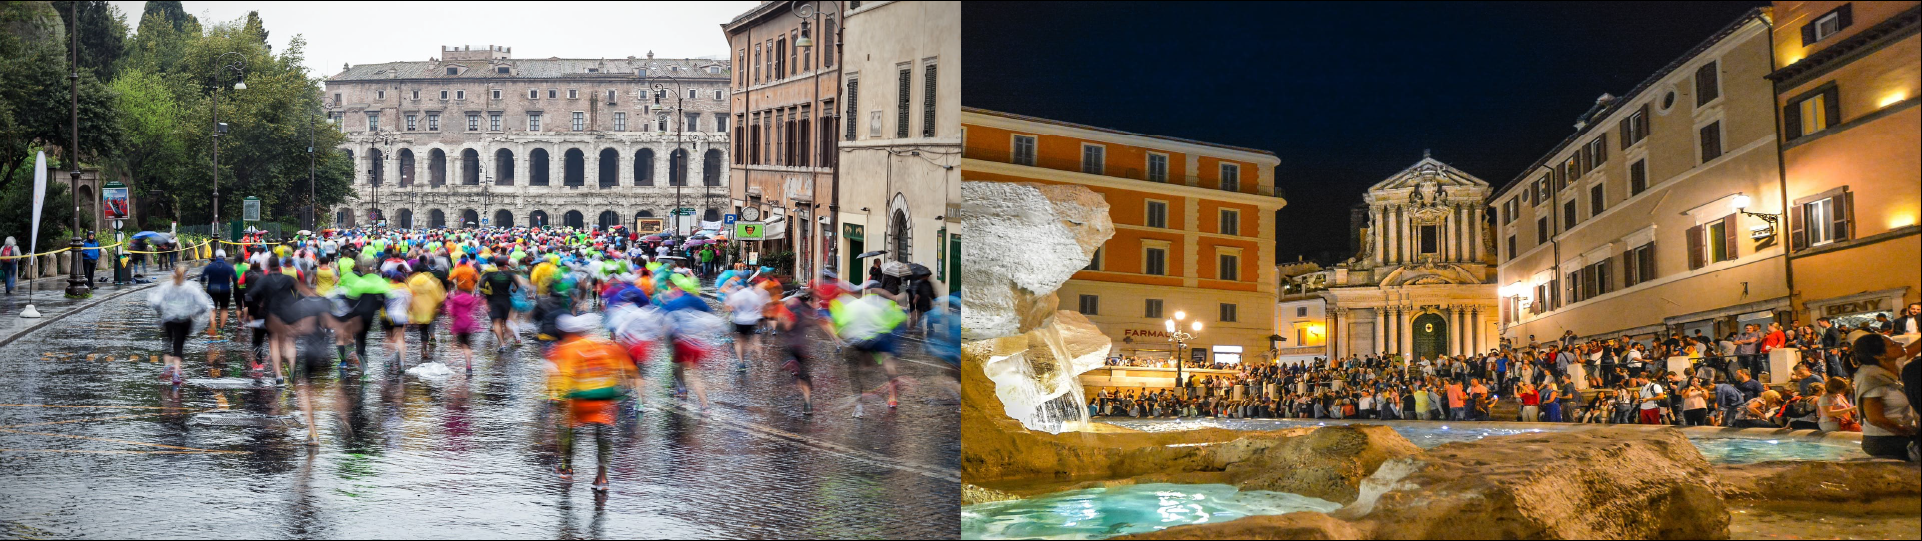 Engaging Activities for Tourists in Italy Image